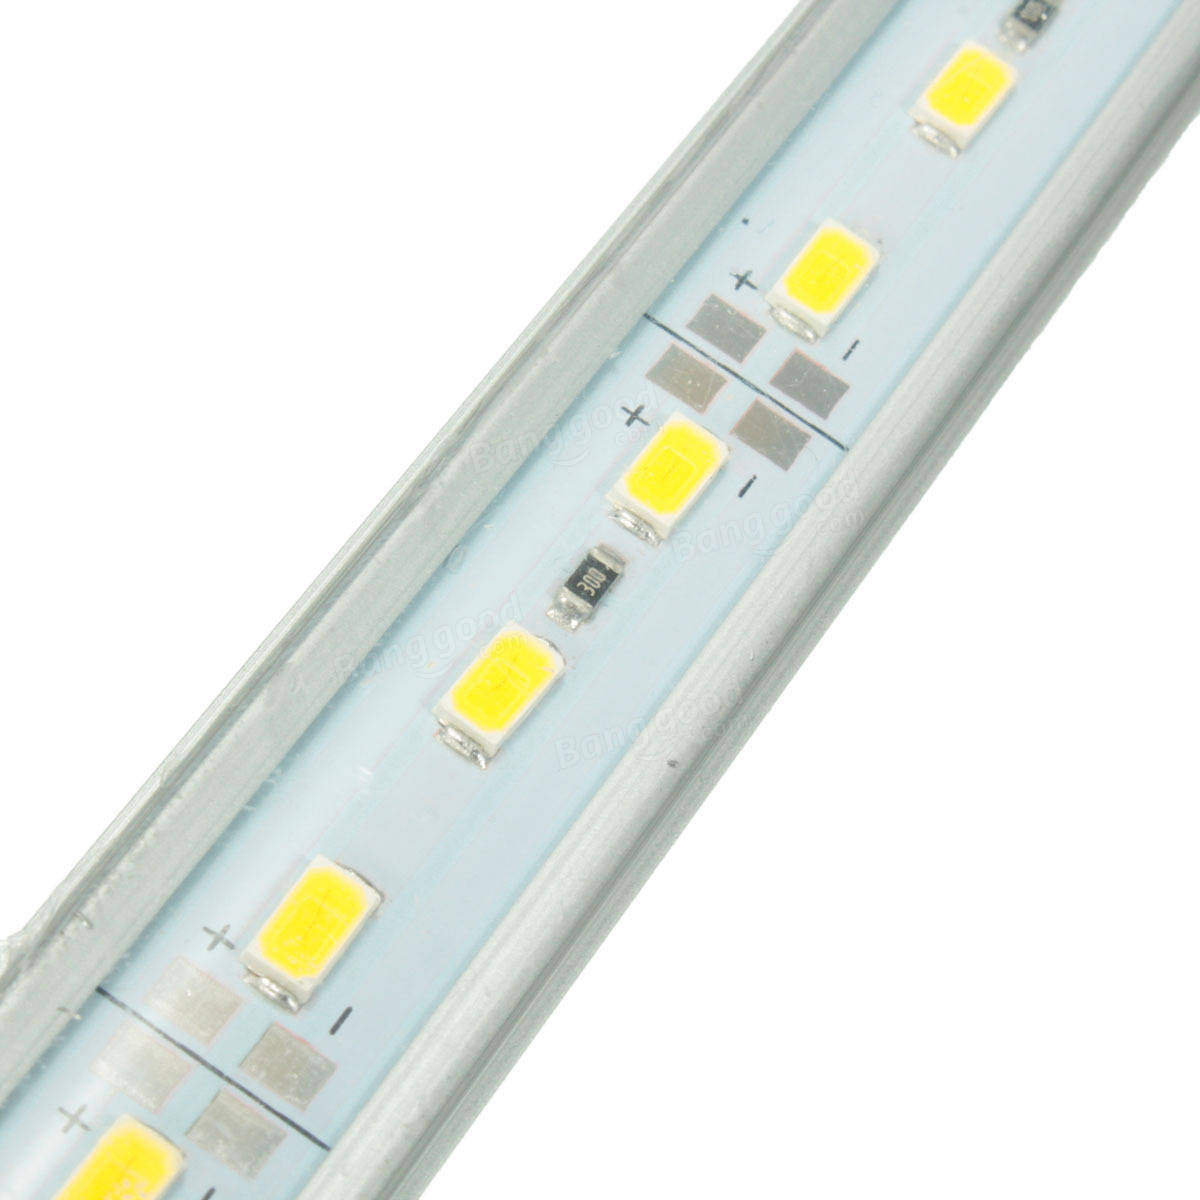 12v 40cm car clear led 5630 smd interior strip light bar van caravan fish tank sale. Black Bedroom Furniture Sets. Home Design Ideas